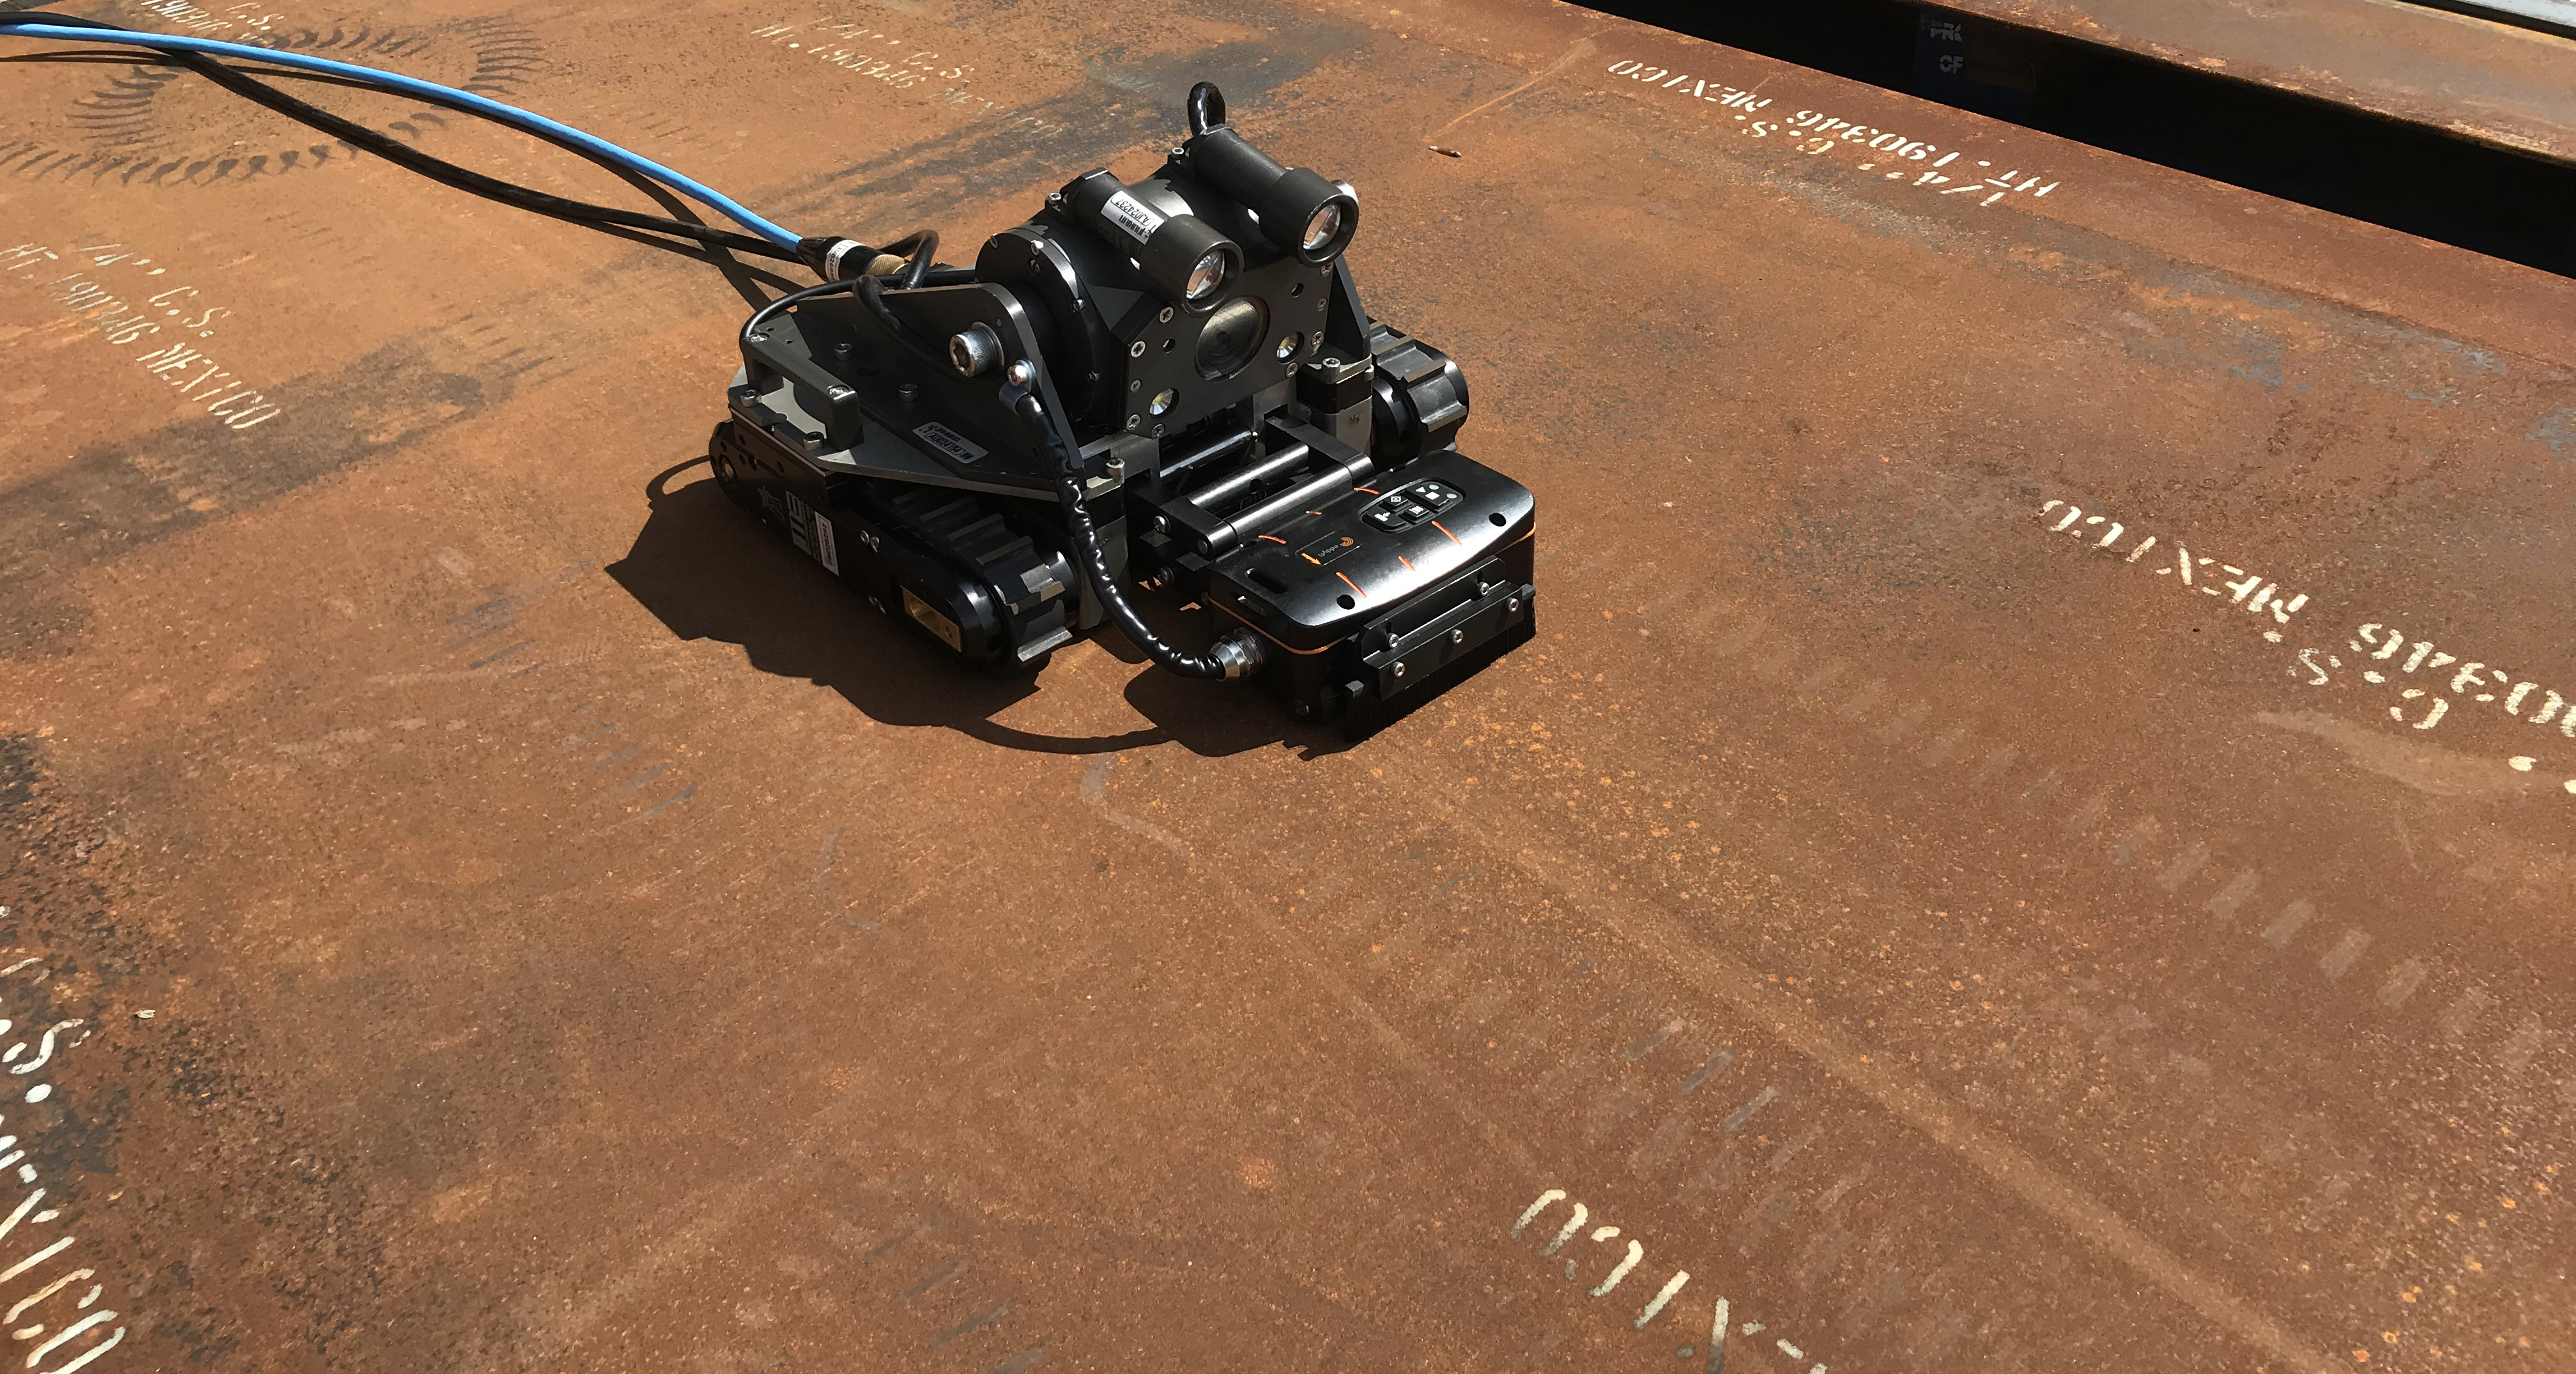 Out of Sight and In Clear View with Remotely Operated NDT Robotics | Eddyfi